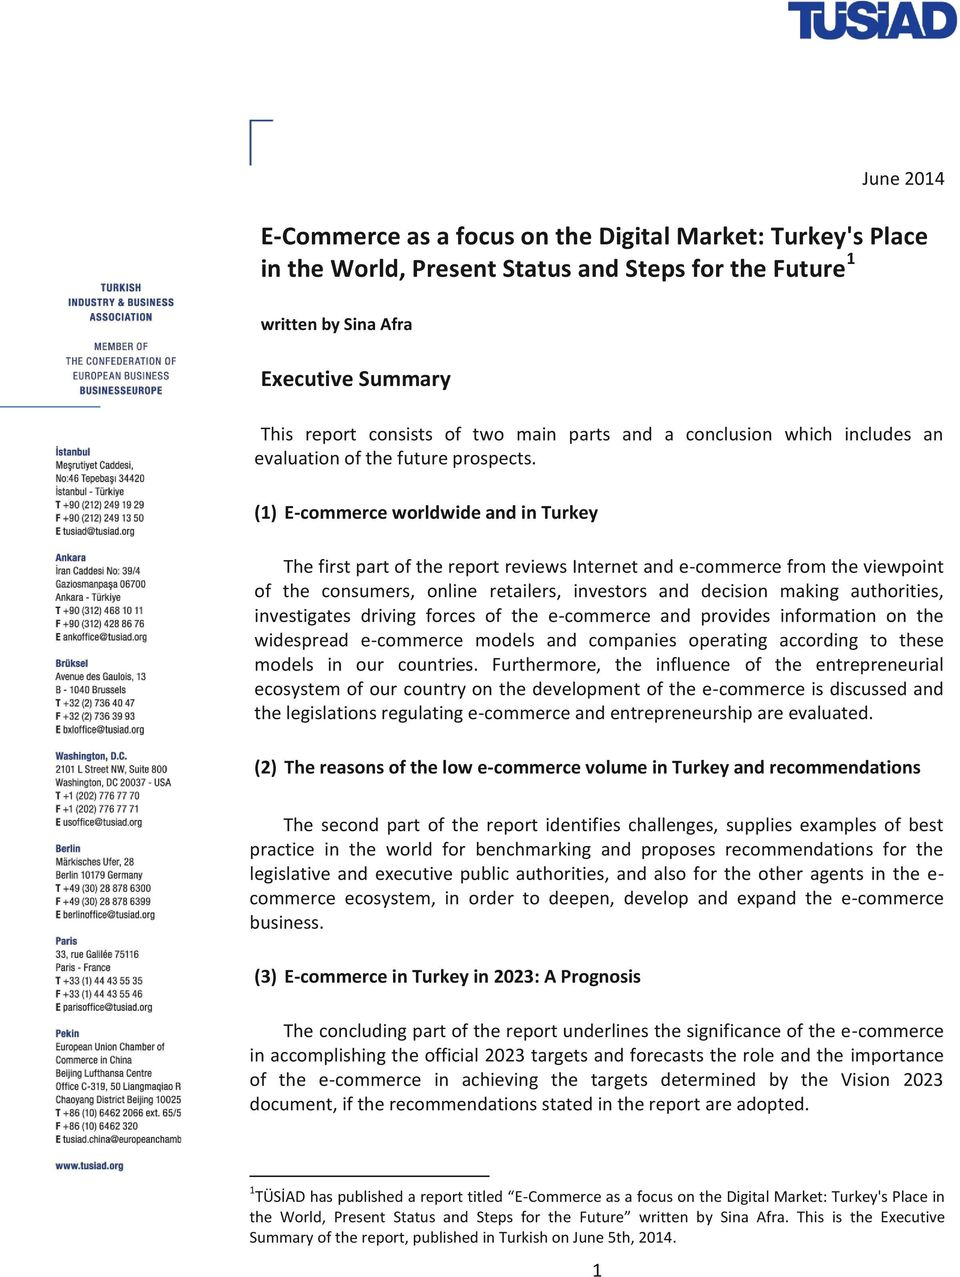 (1) E-commerce worldwide and in Turkey The first part of the report reviews Internet and e-commerce from the viewpoint of the consumers, online retailers, investors and decision making authorities,